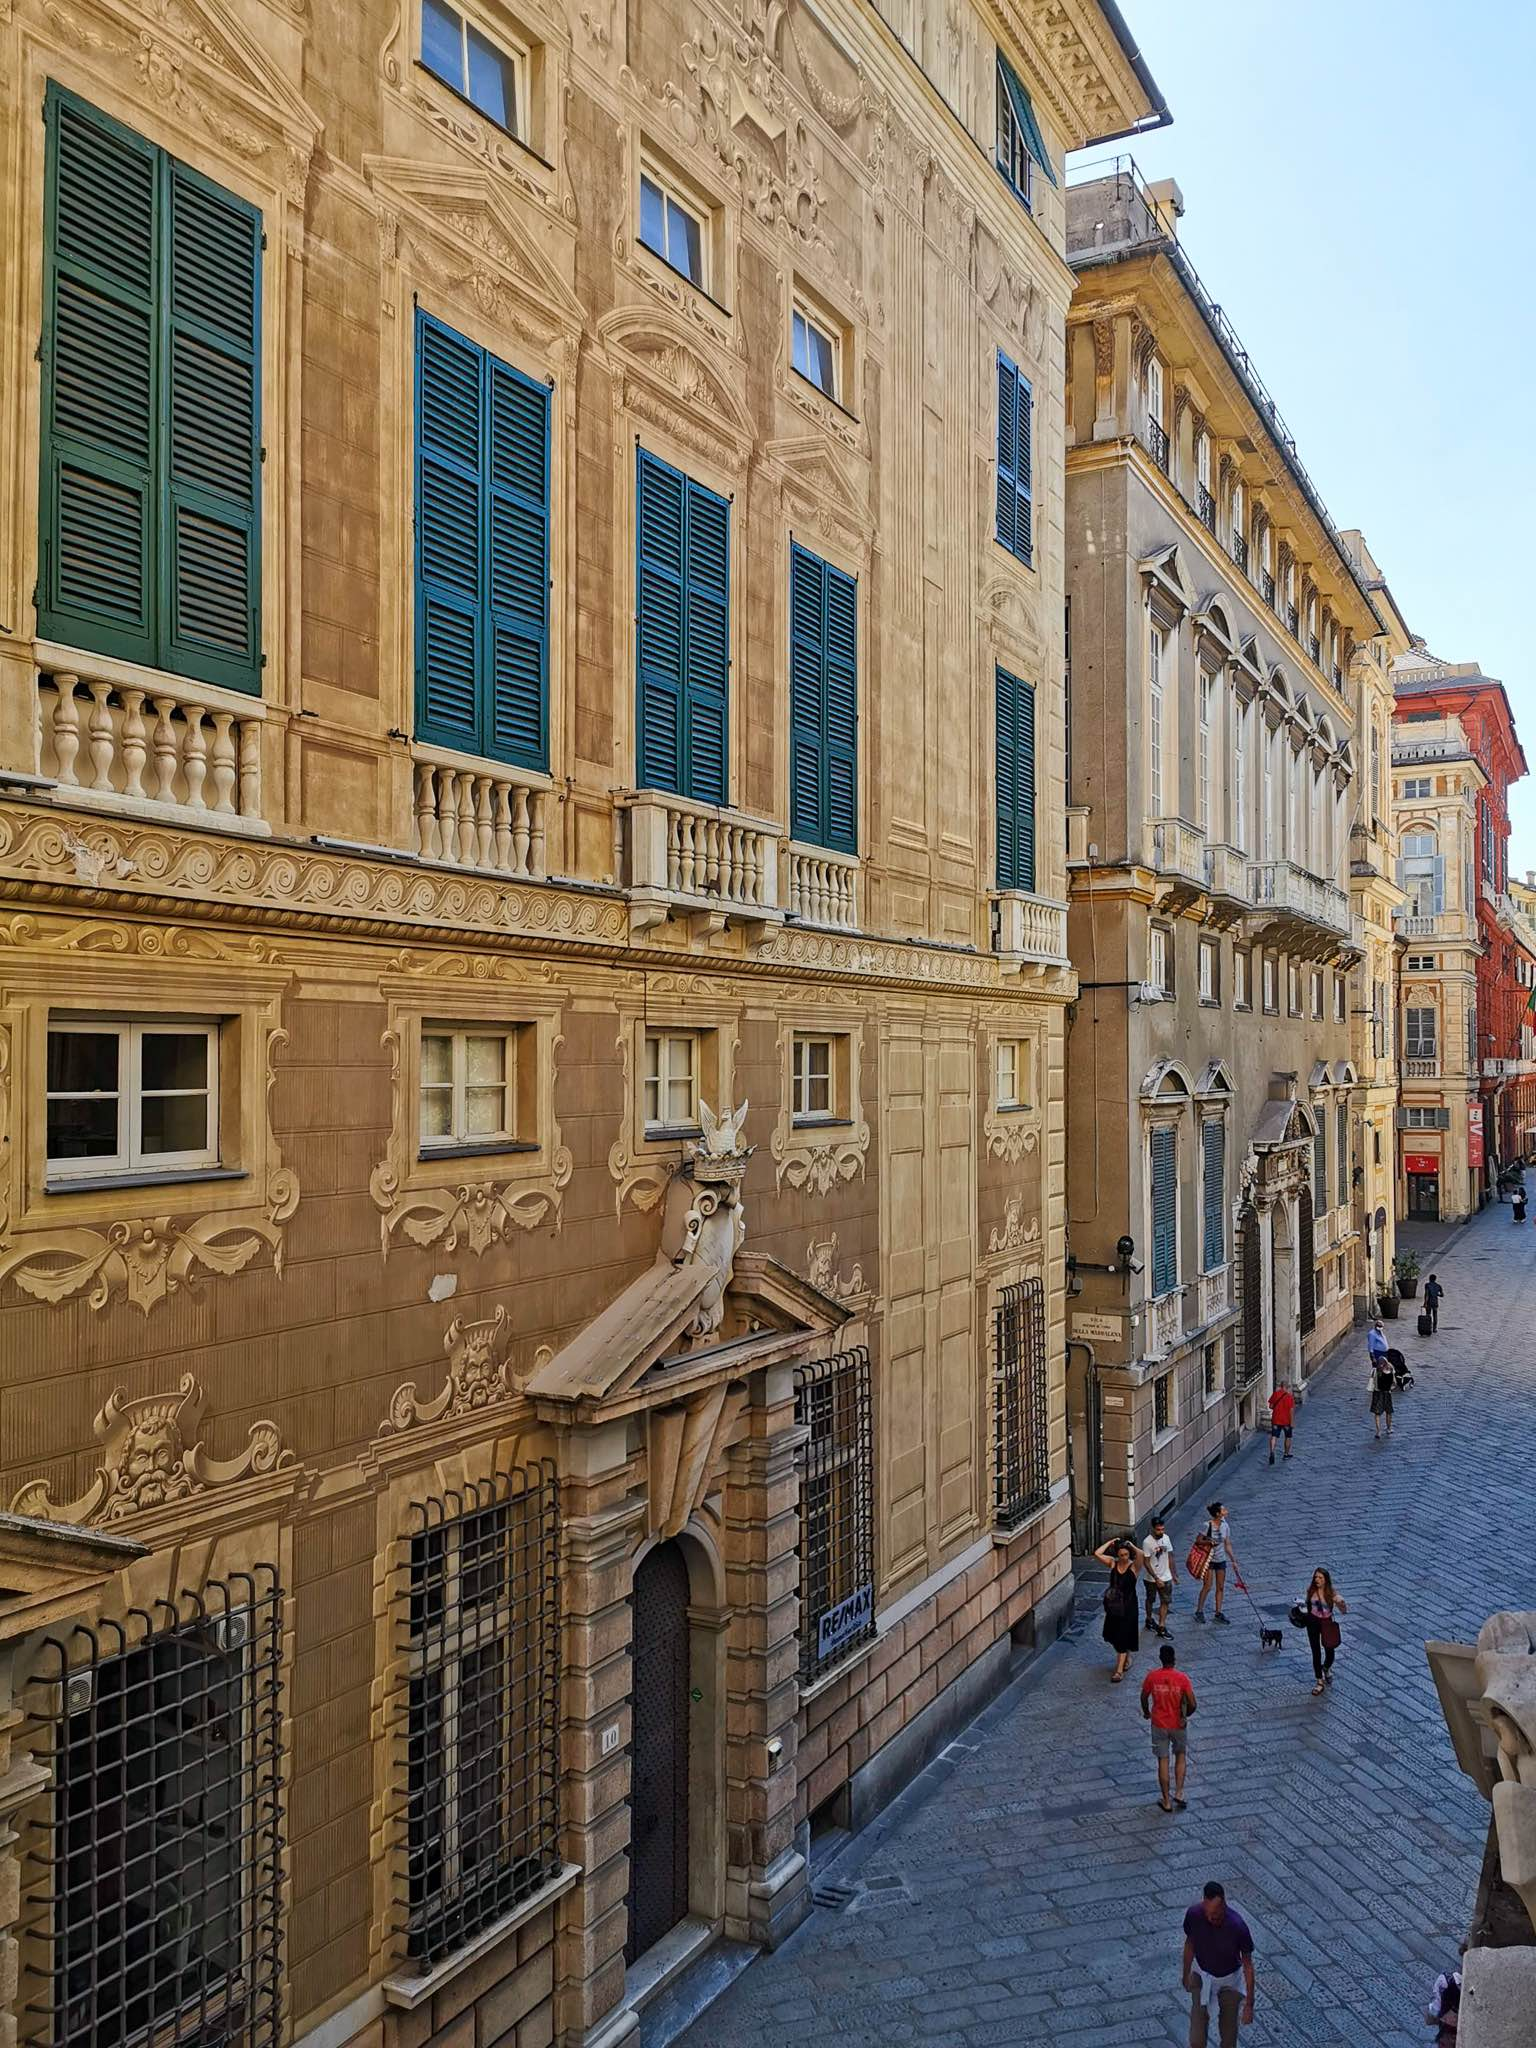 Via Garibaldi, the gorgeous street home to the Palazzi dei Rolli Unesco site in Genoa